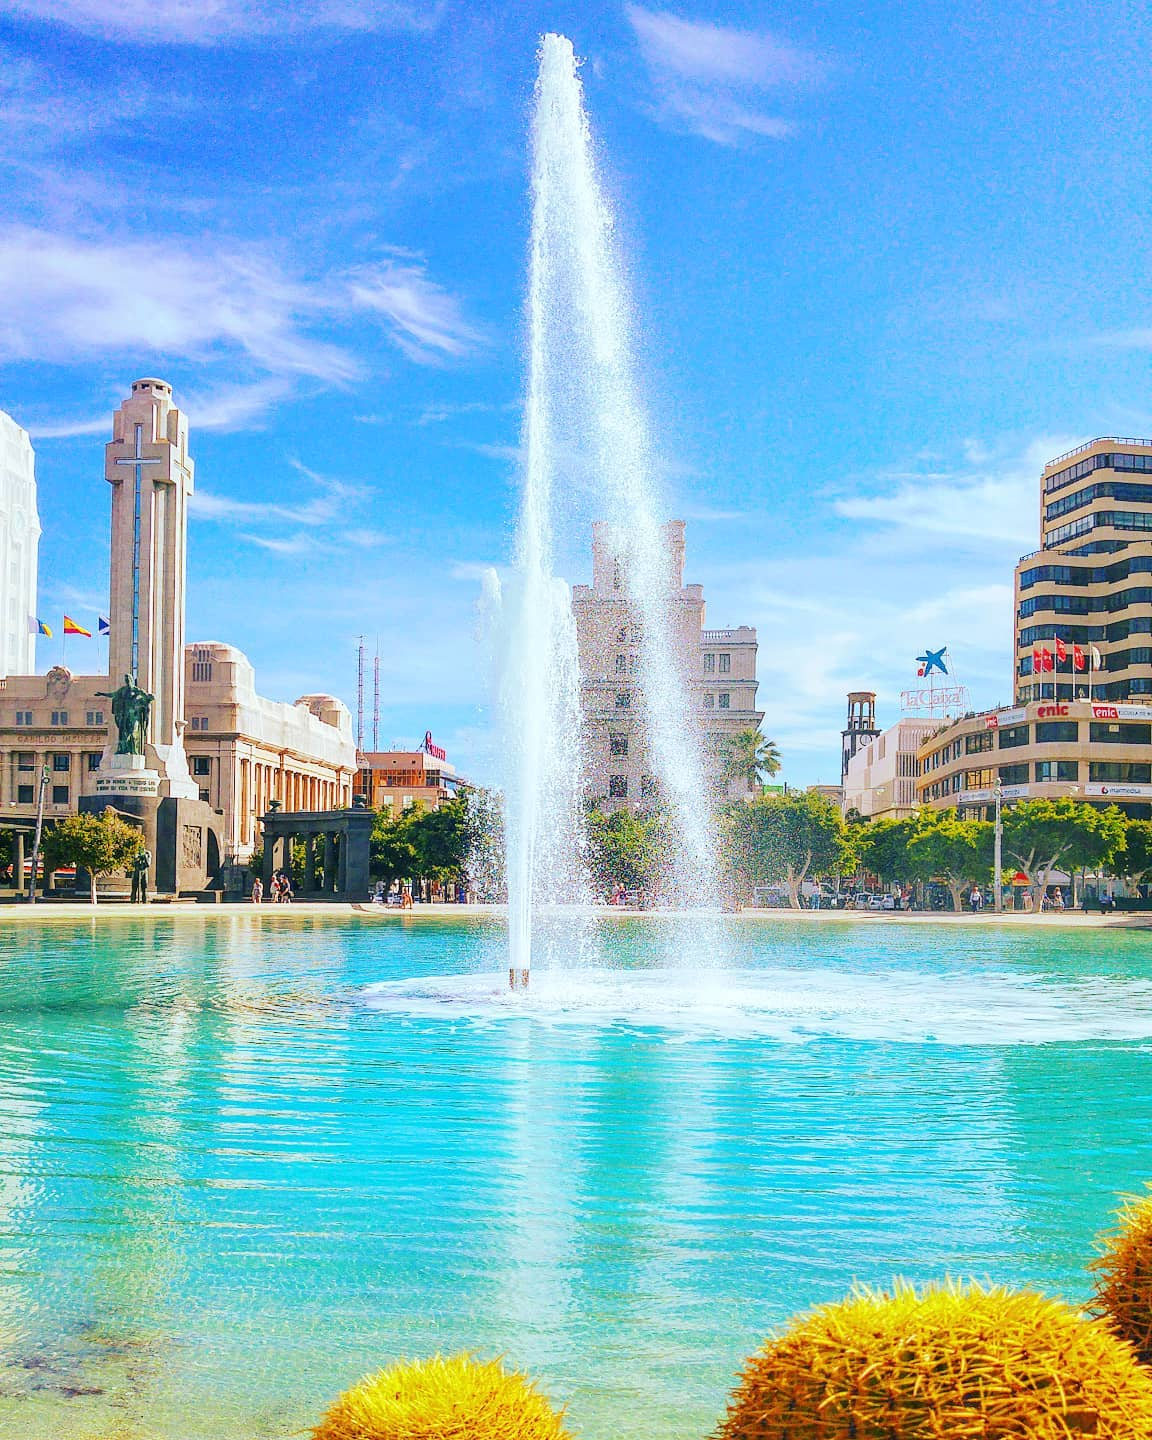 Blue mood 🤙 Santa Cruz, Tenerife 2015 #santacruz #travelpics #blue #traveler #watercolor #traveller #tenerife #travelling #travelgram #travels #travelstoke #fountain #travellife #tbc #travelawesome #traveladdict #travel #travelblog #traveling #travelphotography #igerstenerife #water #travelholic #travelphoto #travelingram